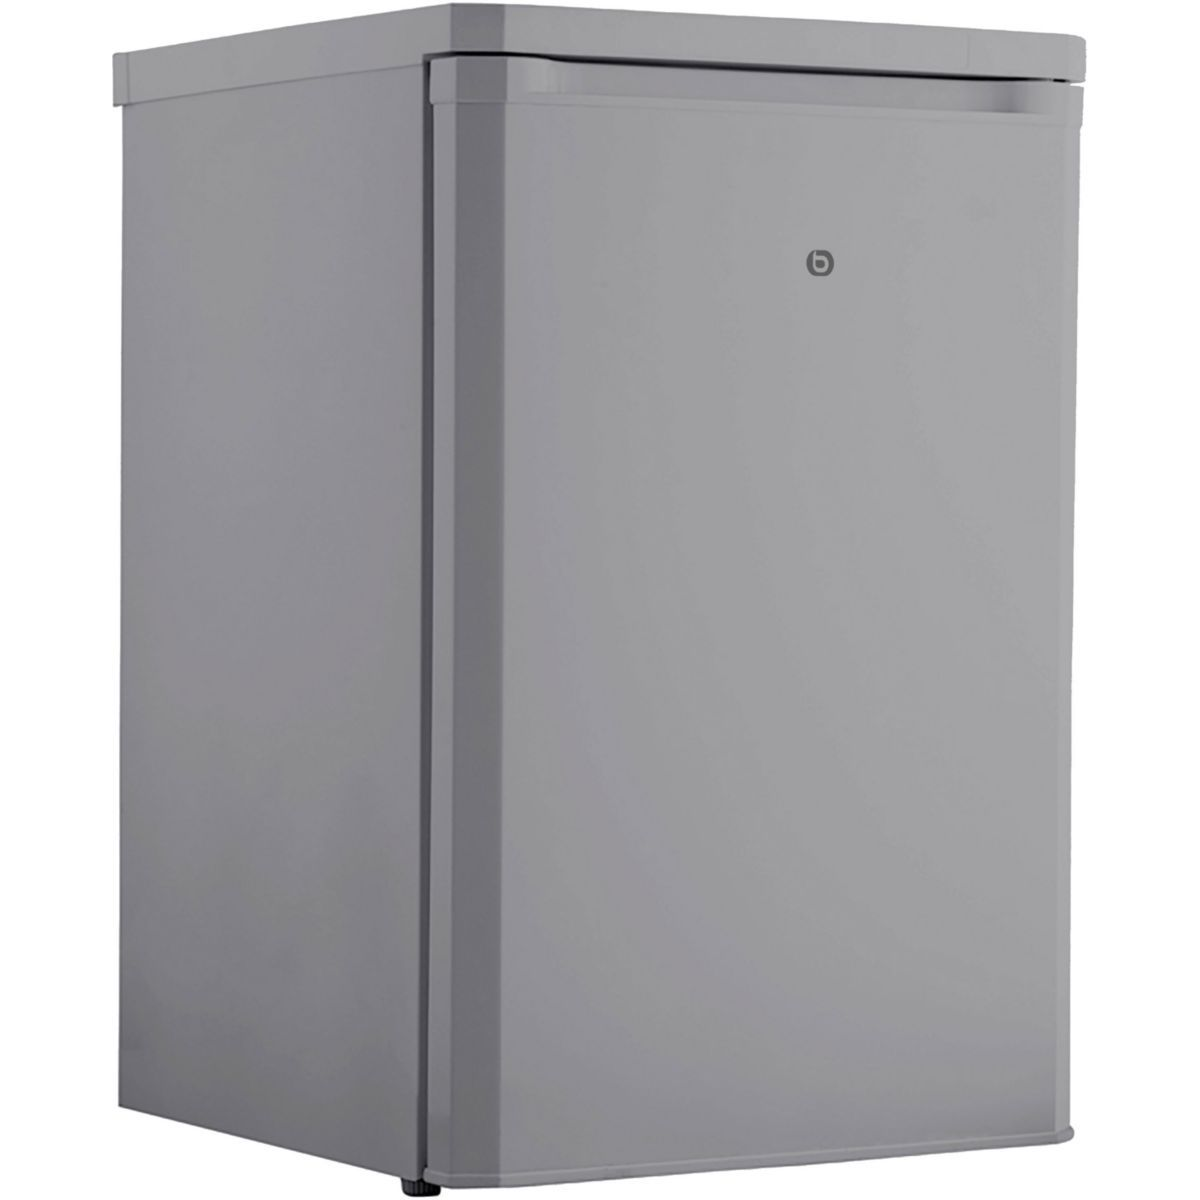 Refrigerateur Top Essentielb Ertl85 55s4 En 2019 Products Refrigerateur Top Et Unique